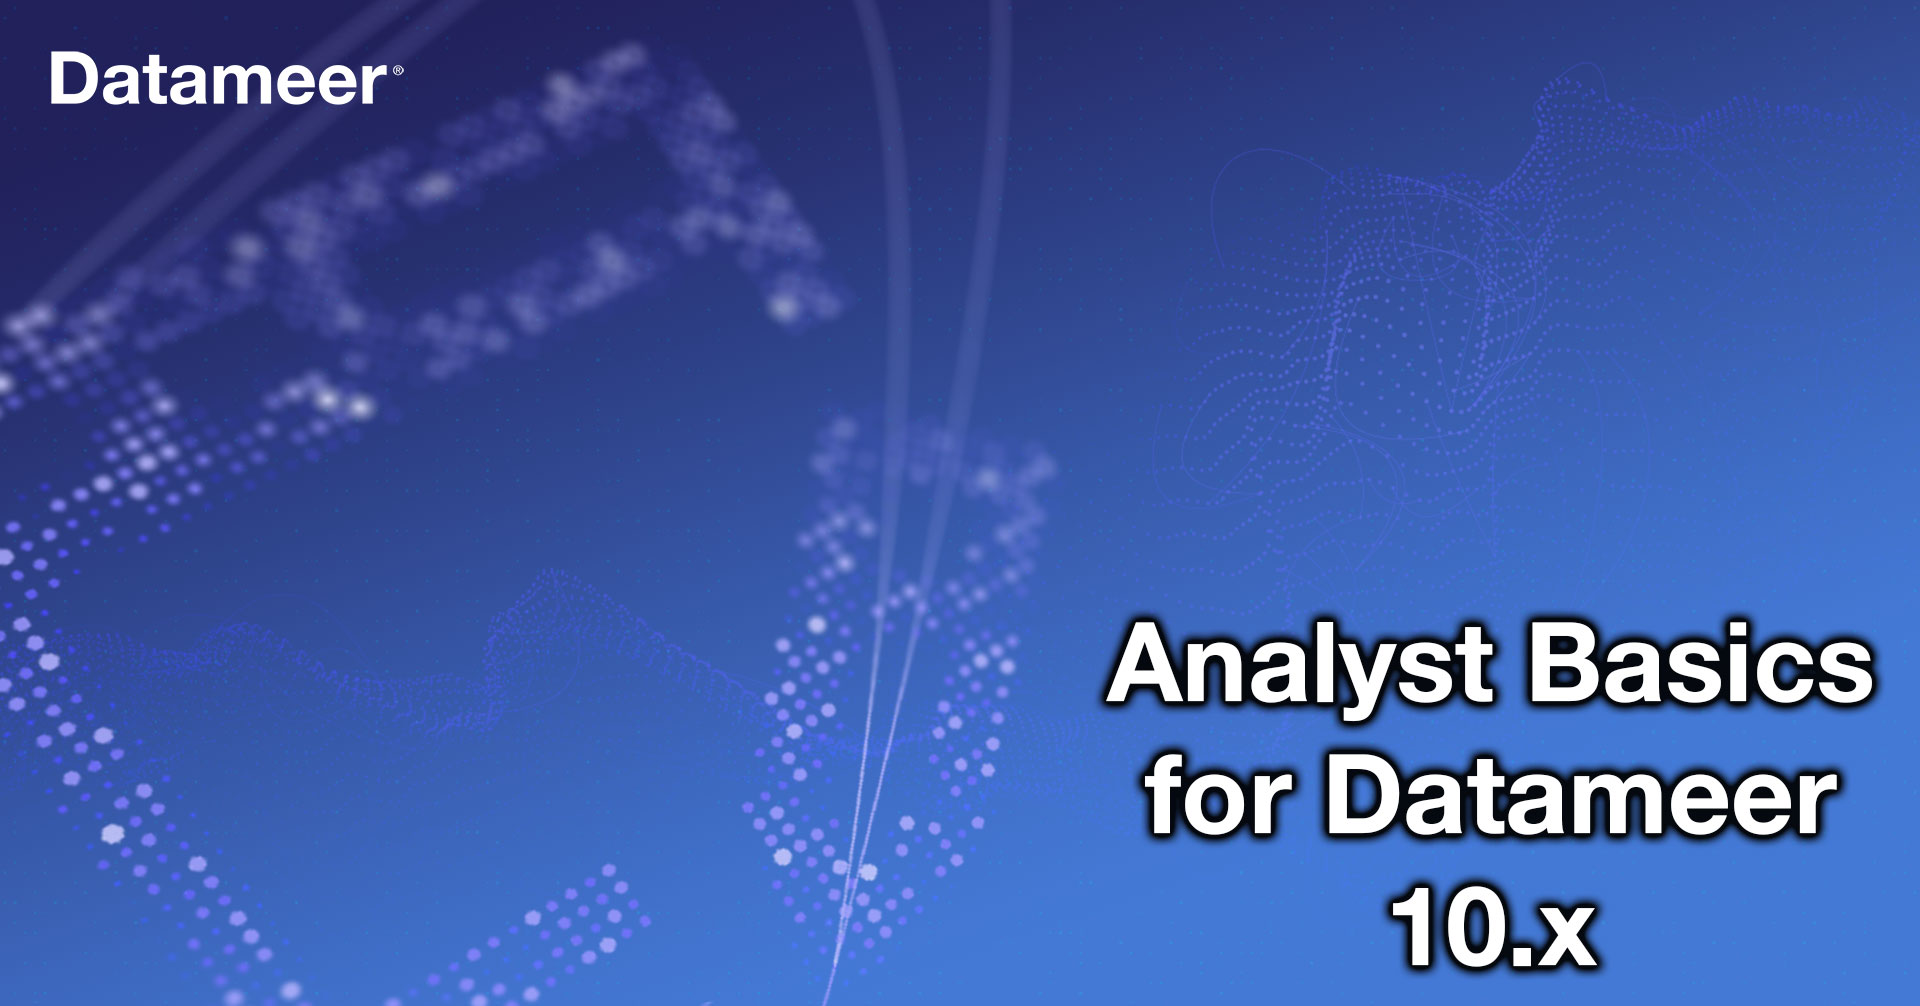 Datameer Analyst Basics For Datameer 10.x